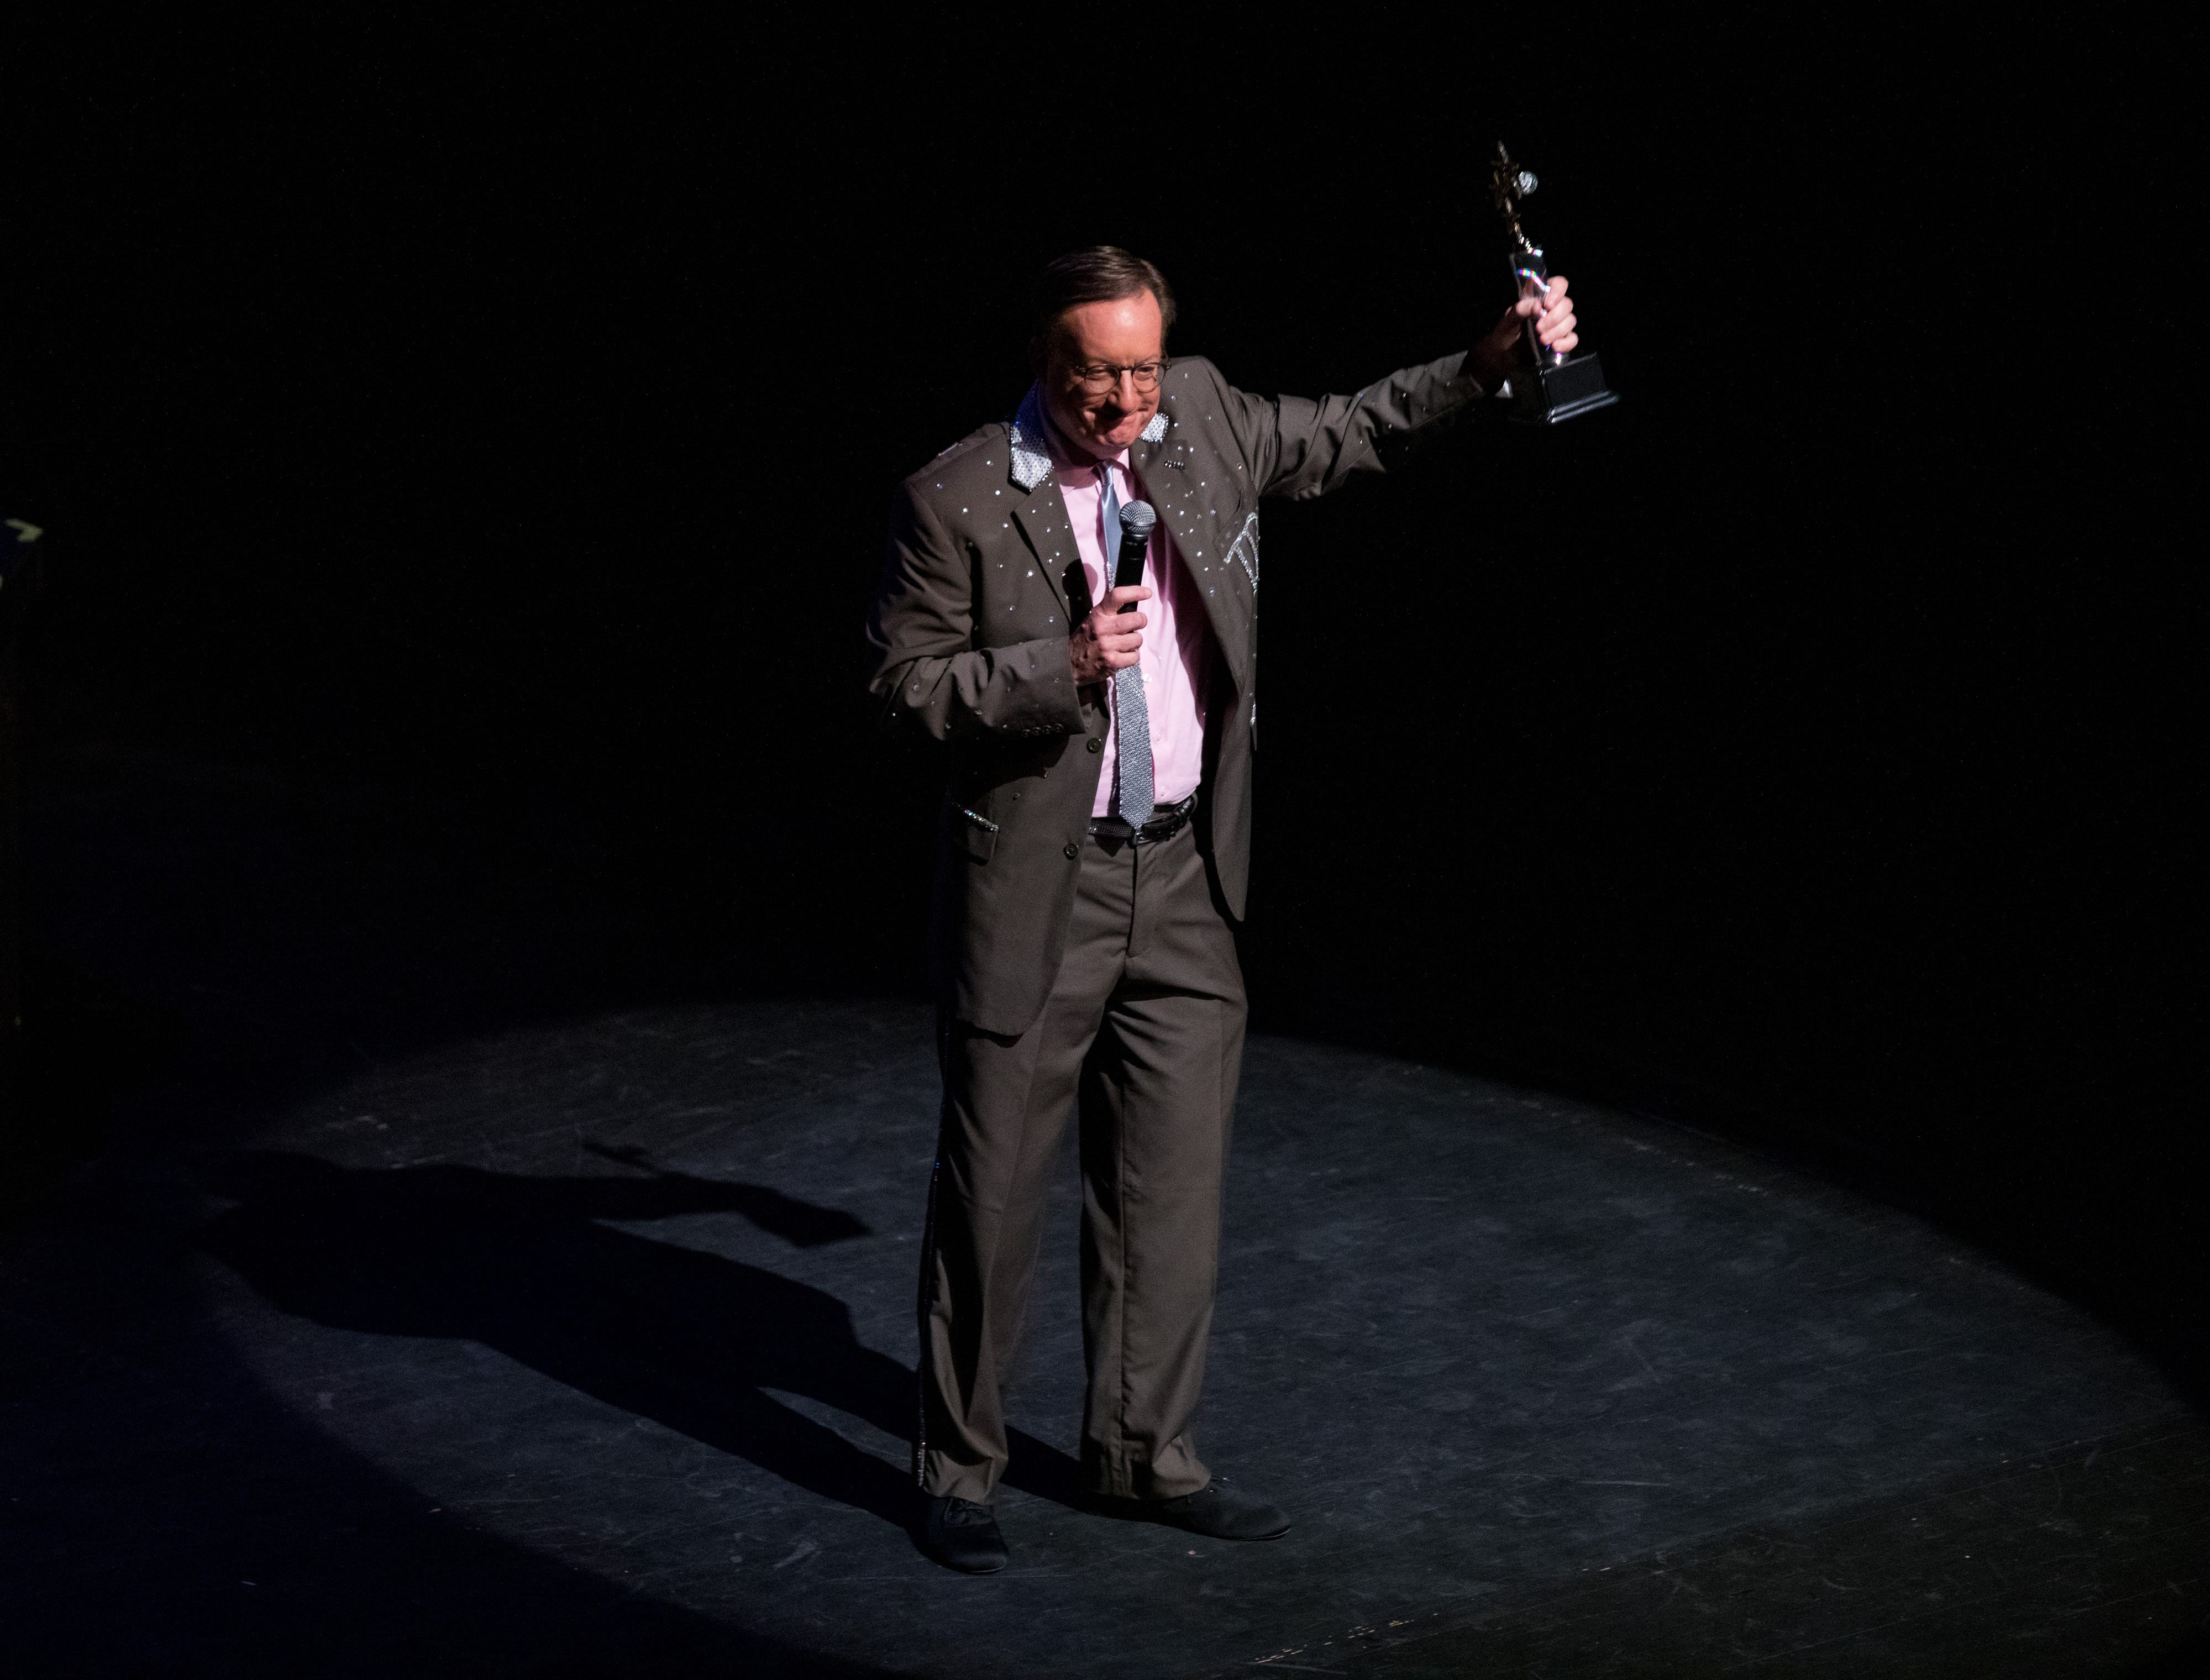 """Charles Frederick, N.C. Market President with TD Bank, won the fundraising award at the inaugural """"Dancing with the Local Stars"""" Feb. 24 in Asheville. Frederick raised more than $11,000 for the American Cancer Society."""